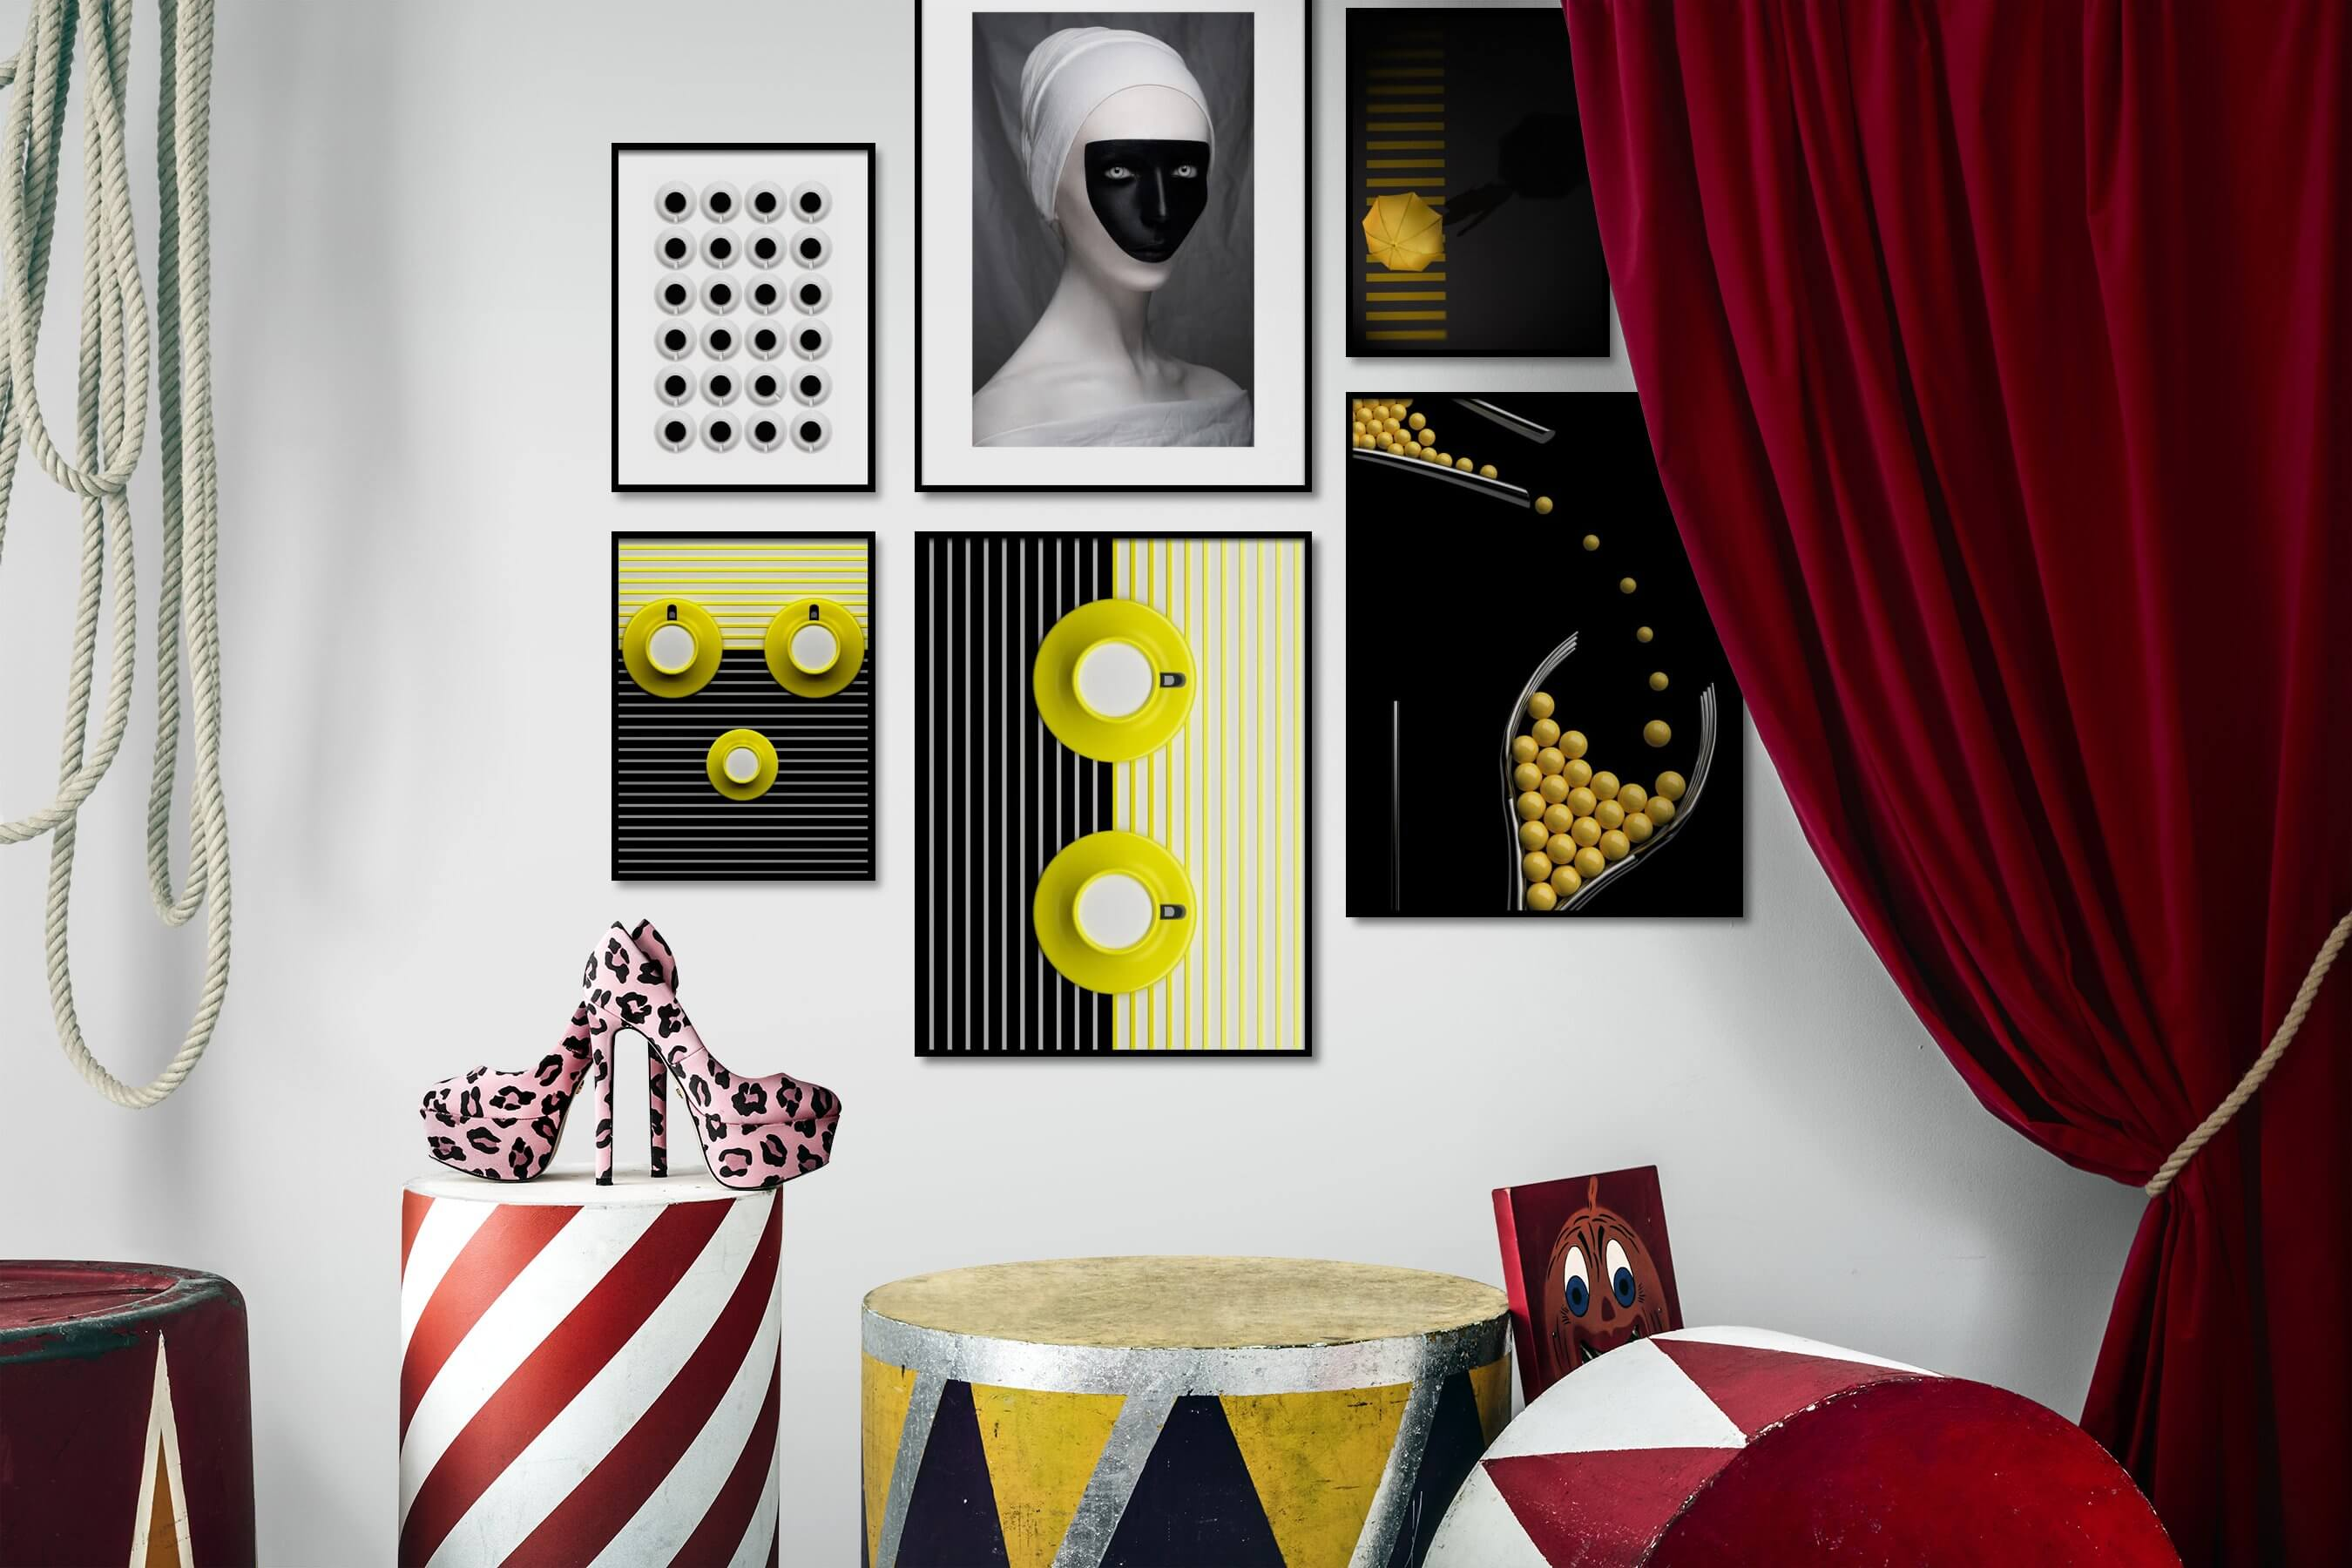 Gallery wall idea with six framed pictures arranged on a wall depicting Bright Tones, For the Minimalist, Artsy, For the Maximalist, Dark Tones, and City Life